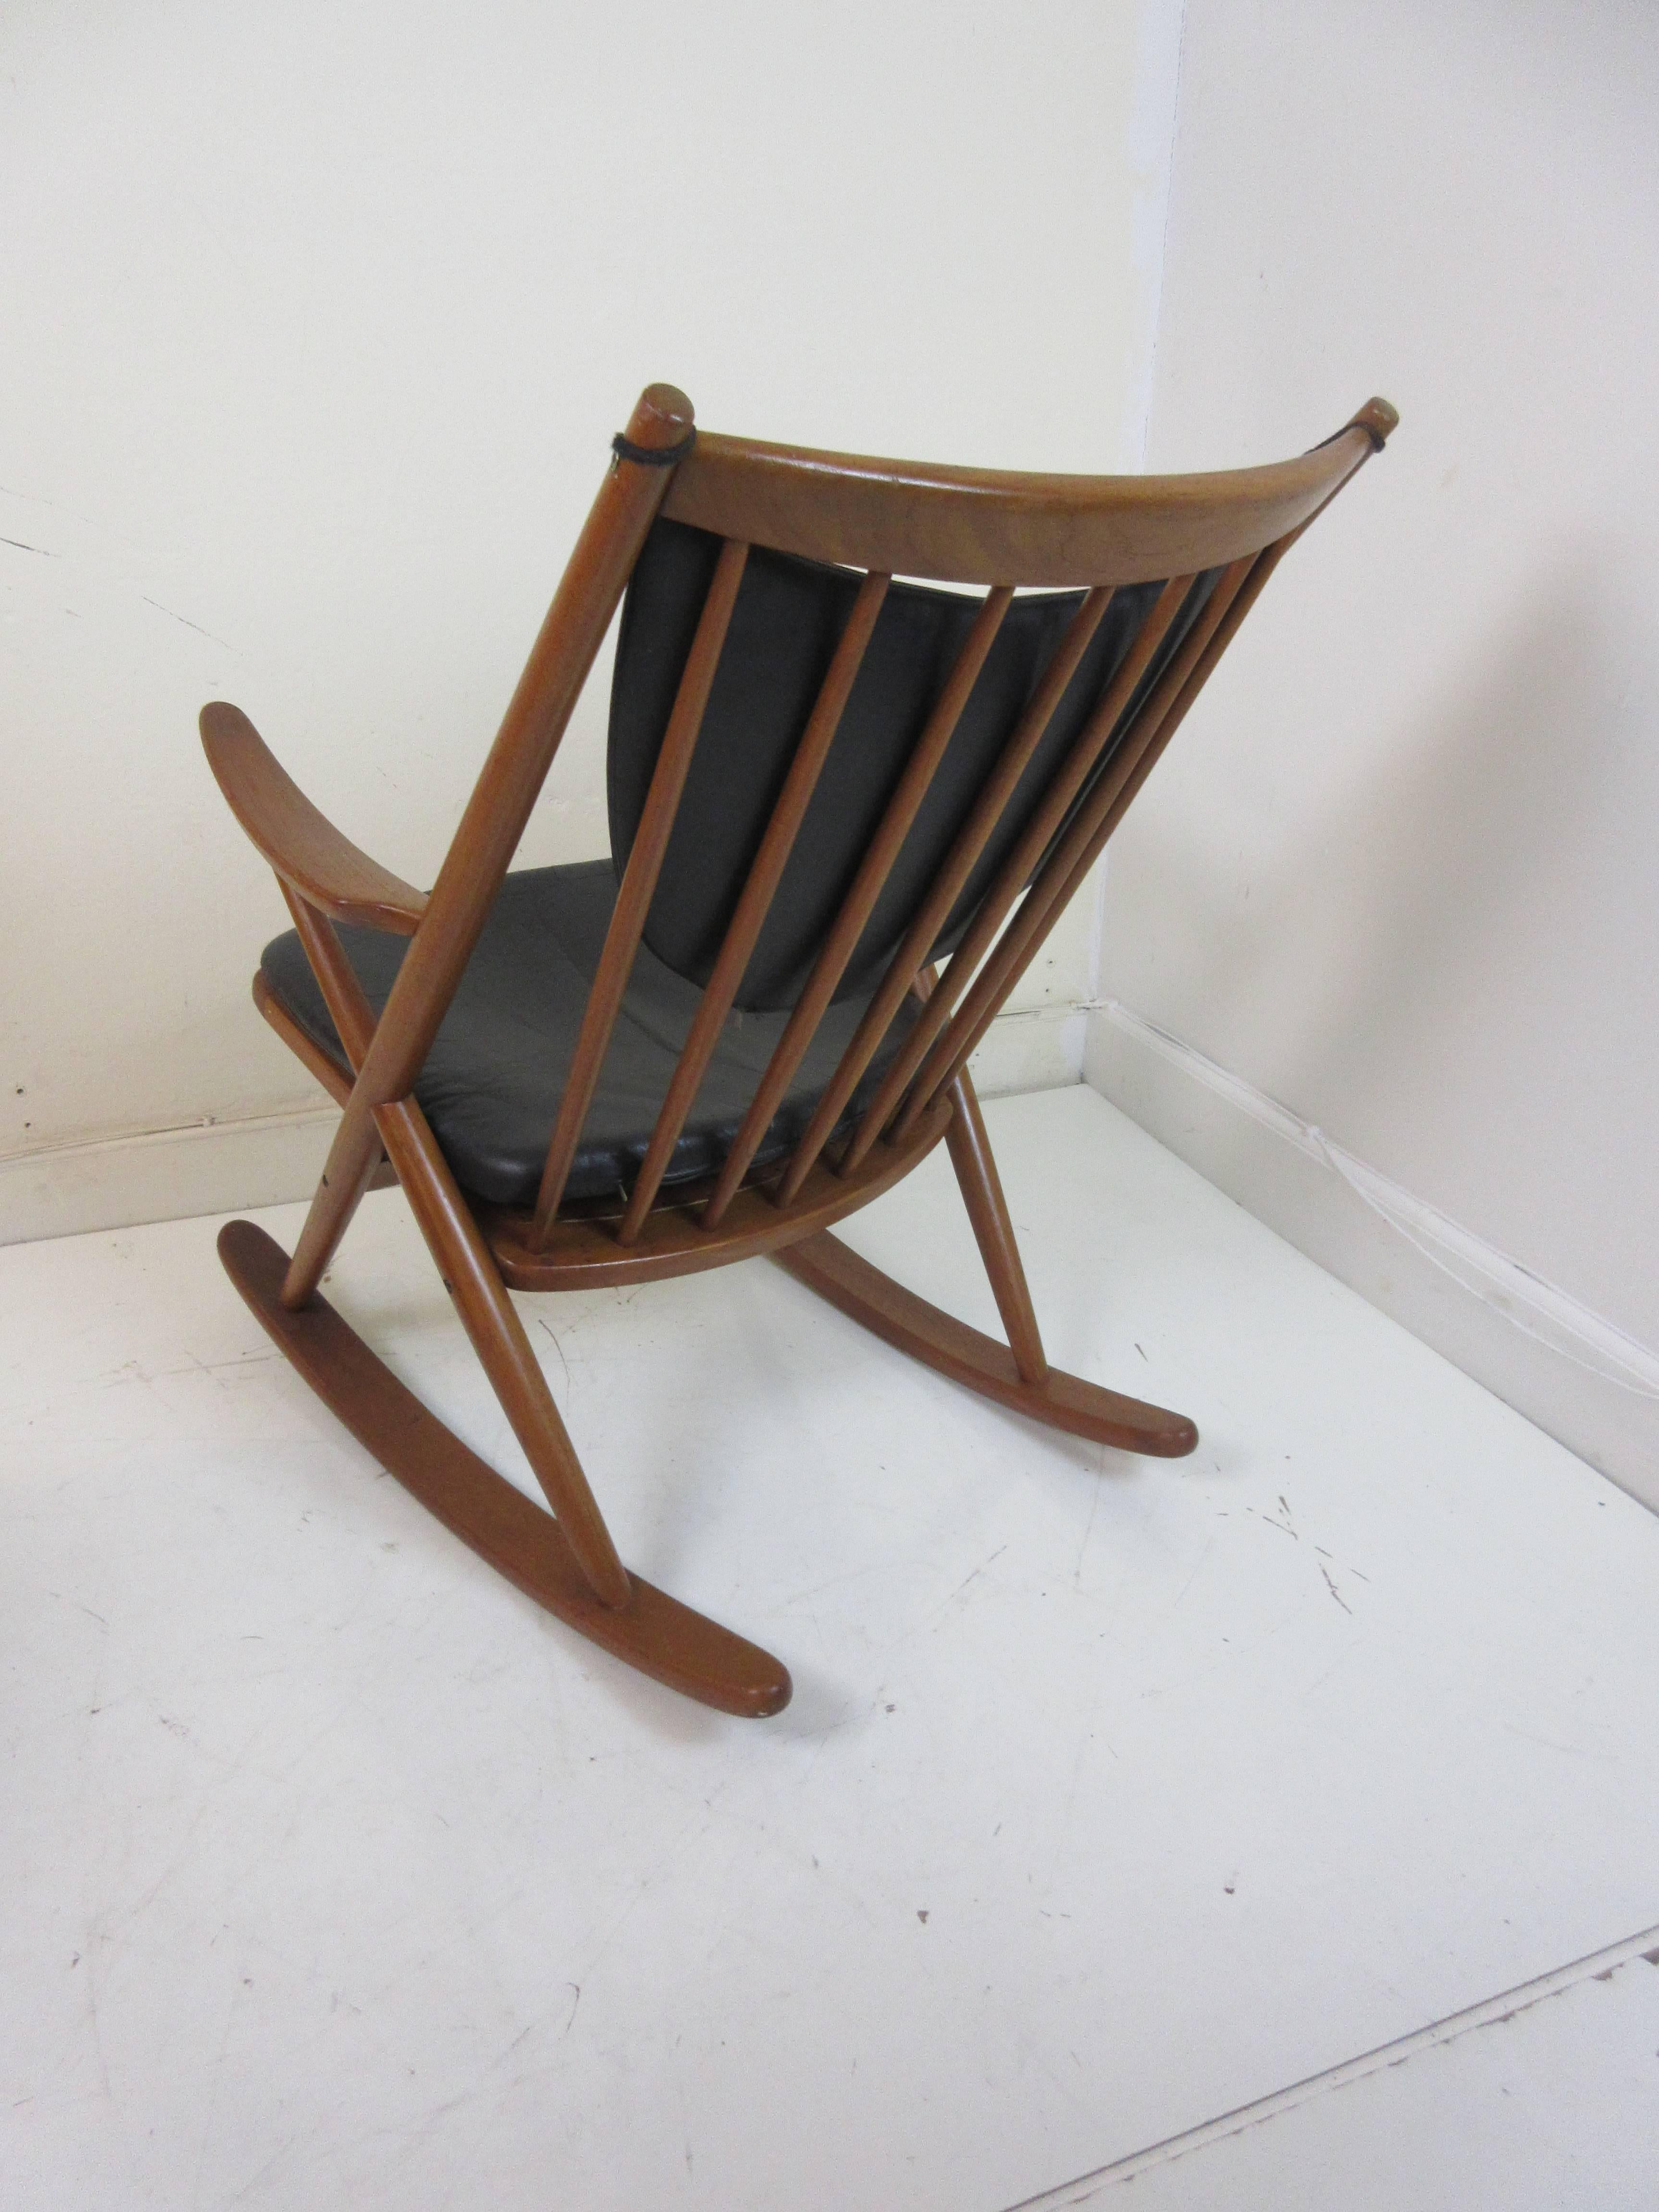 Frank Reenskaug Teak And Leather Rocking Chair By Bramin Mobler Denmark.  All Original And In